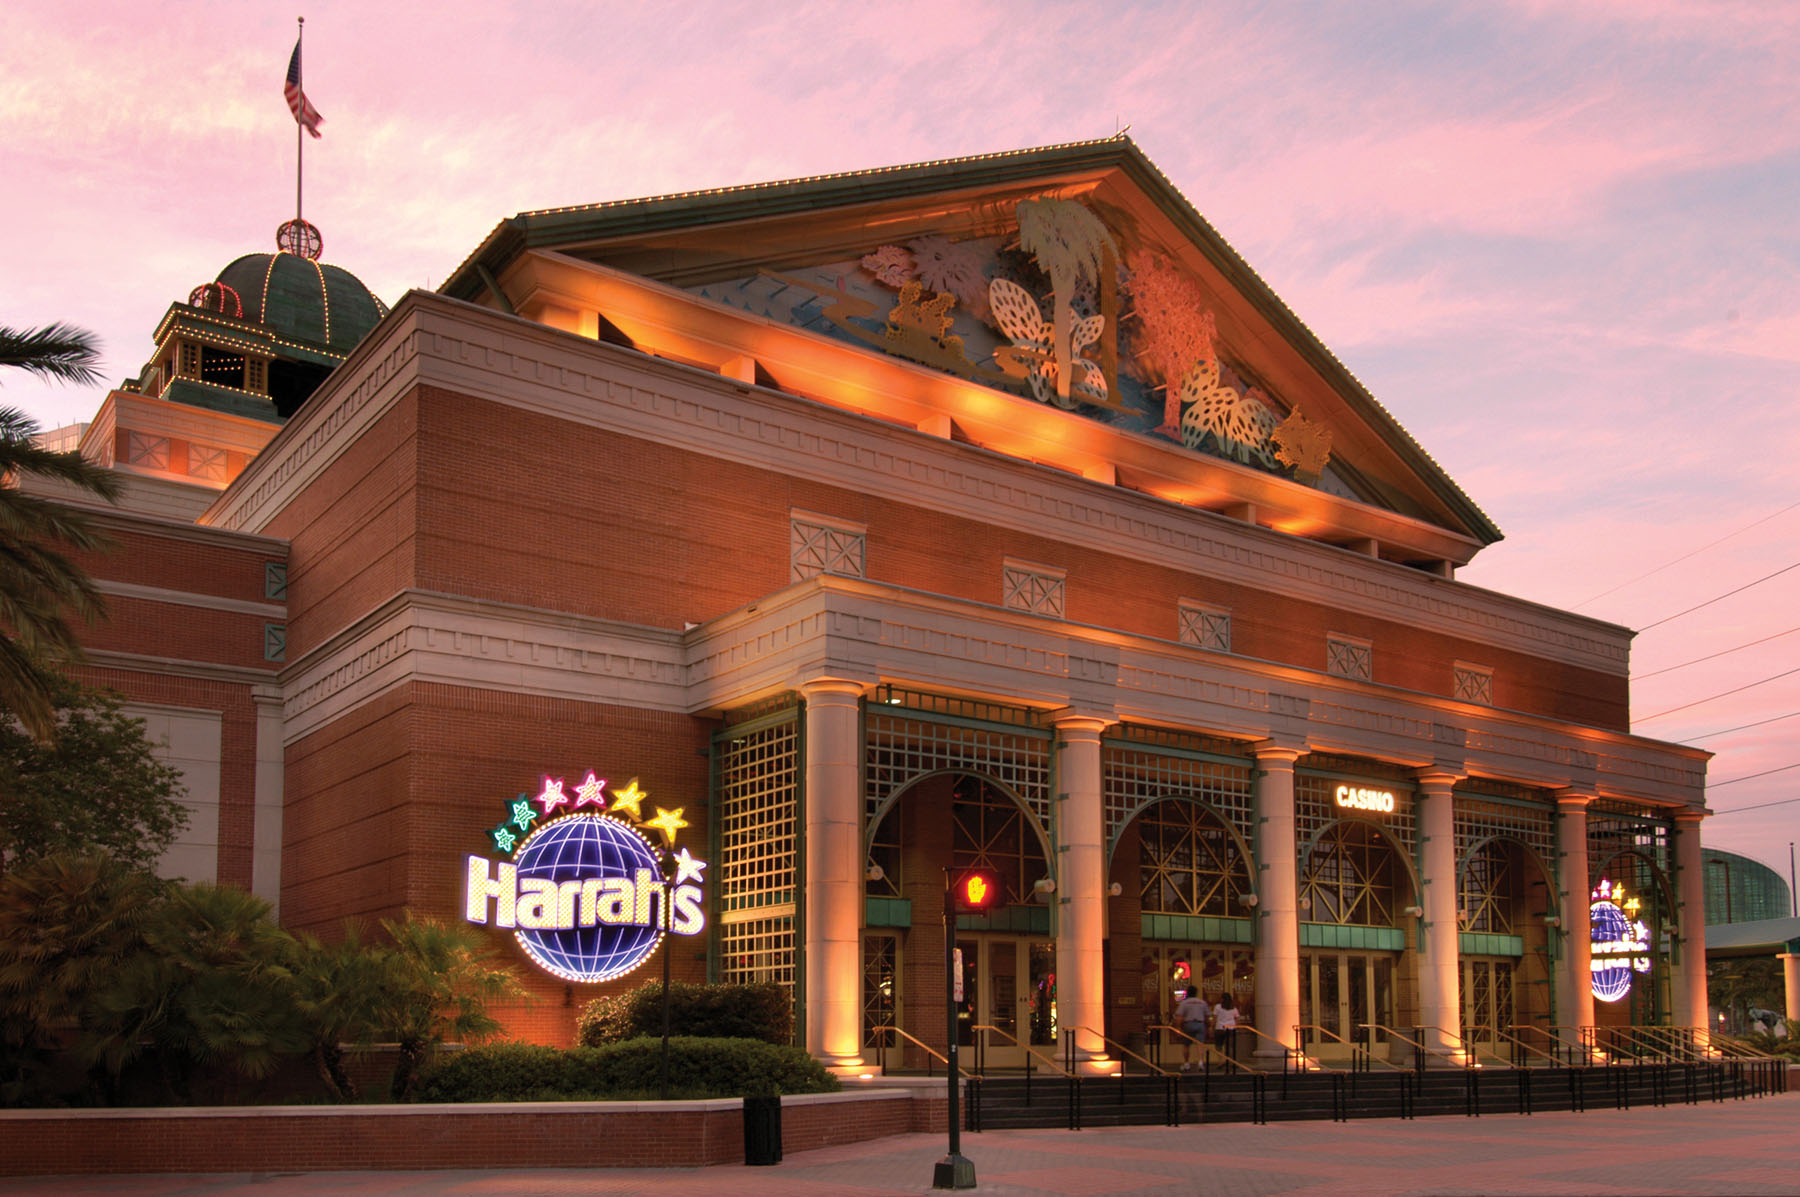 Harrrahs casino hotels free cell casino